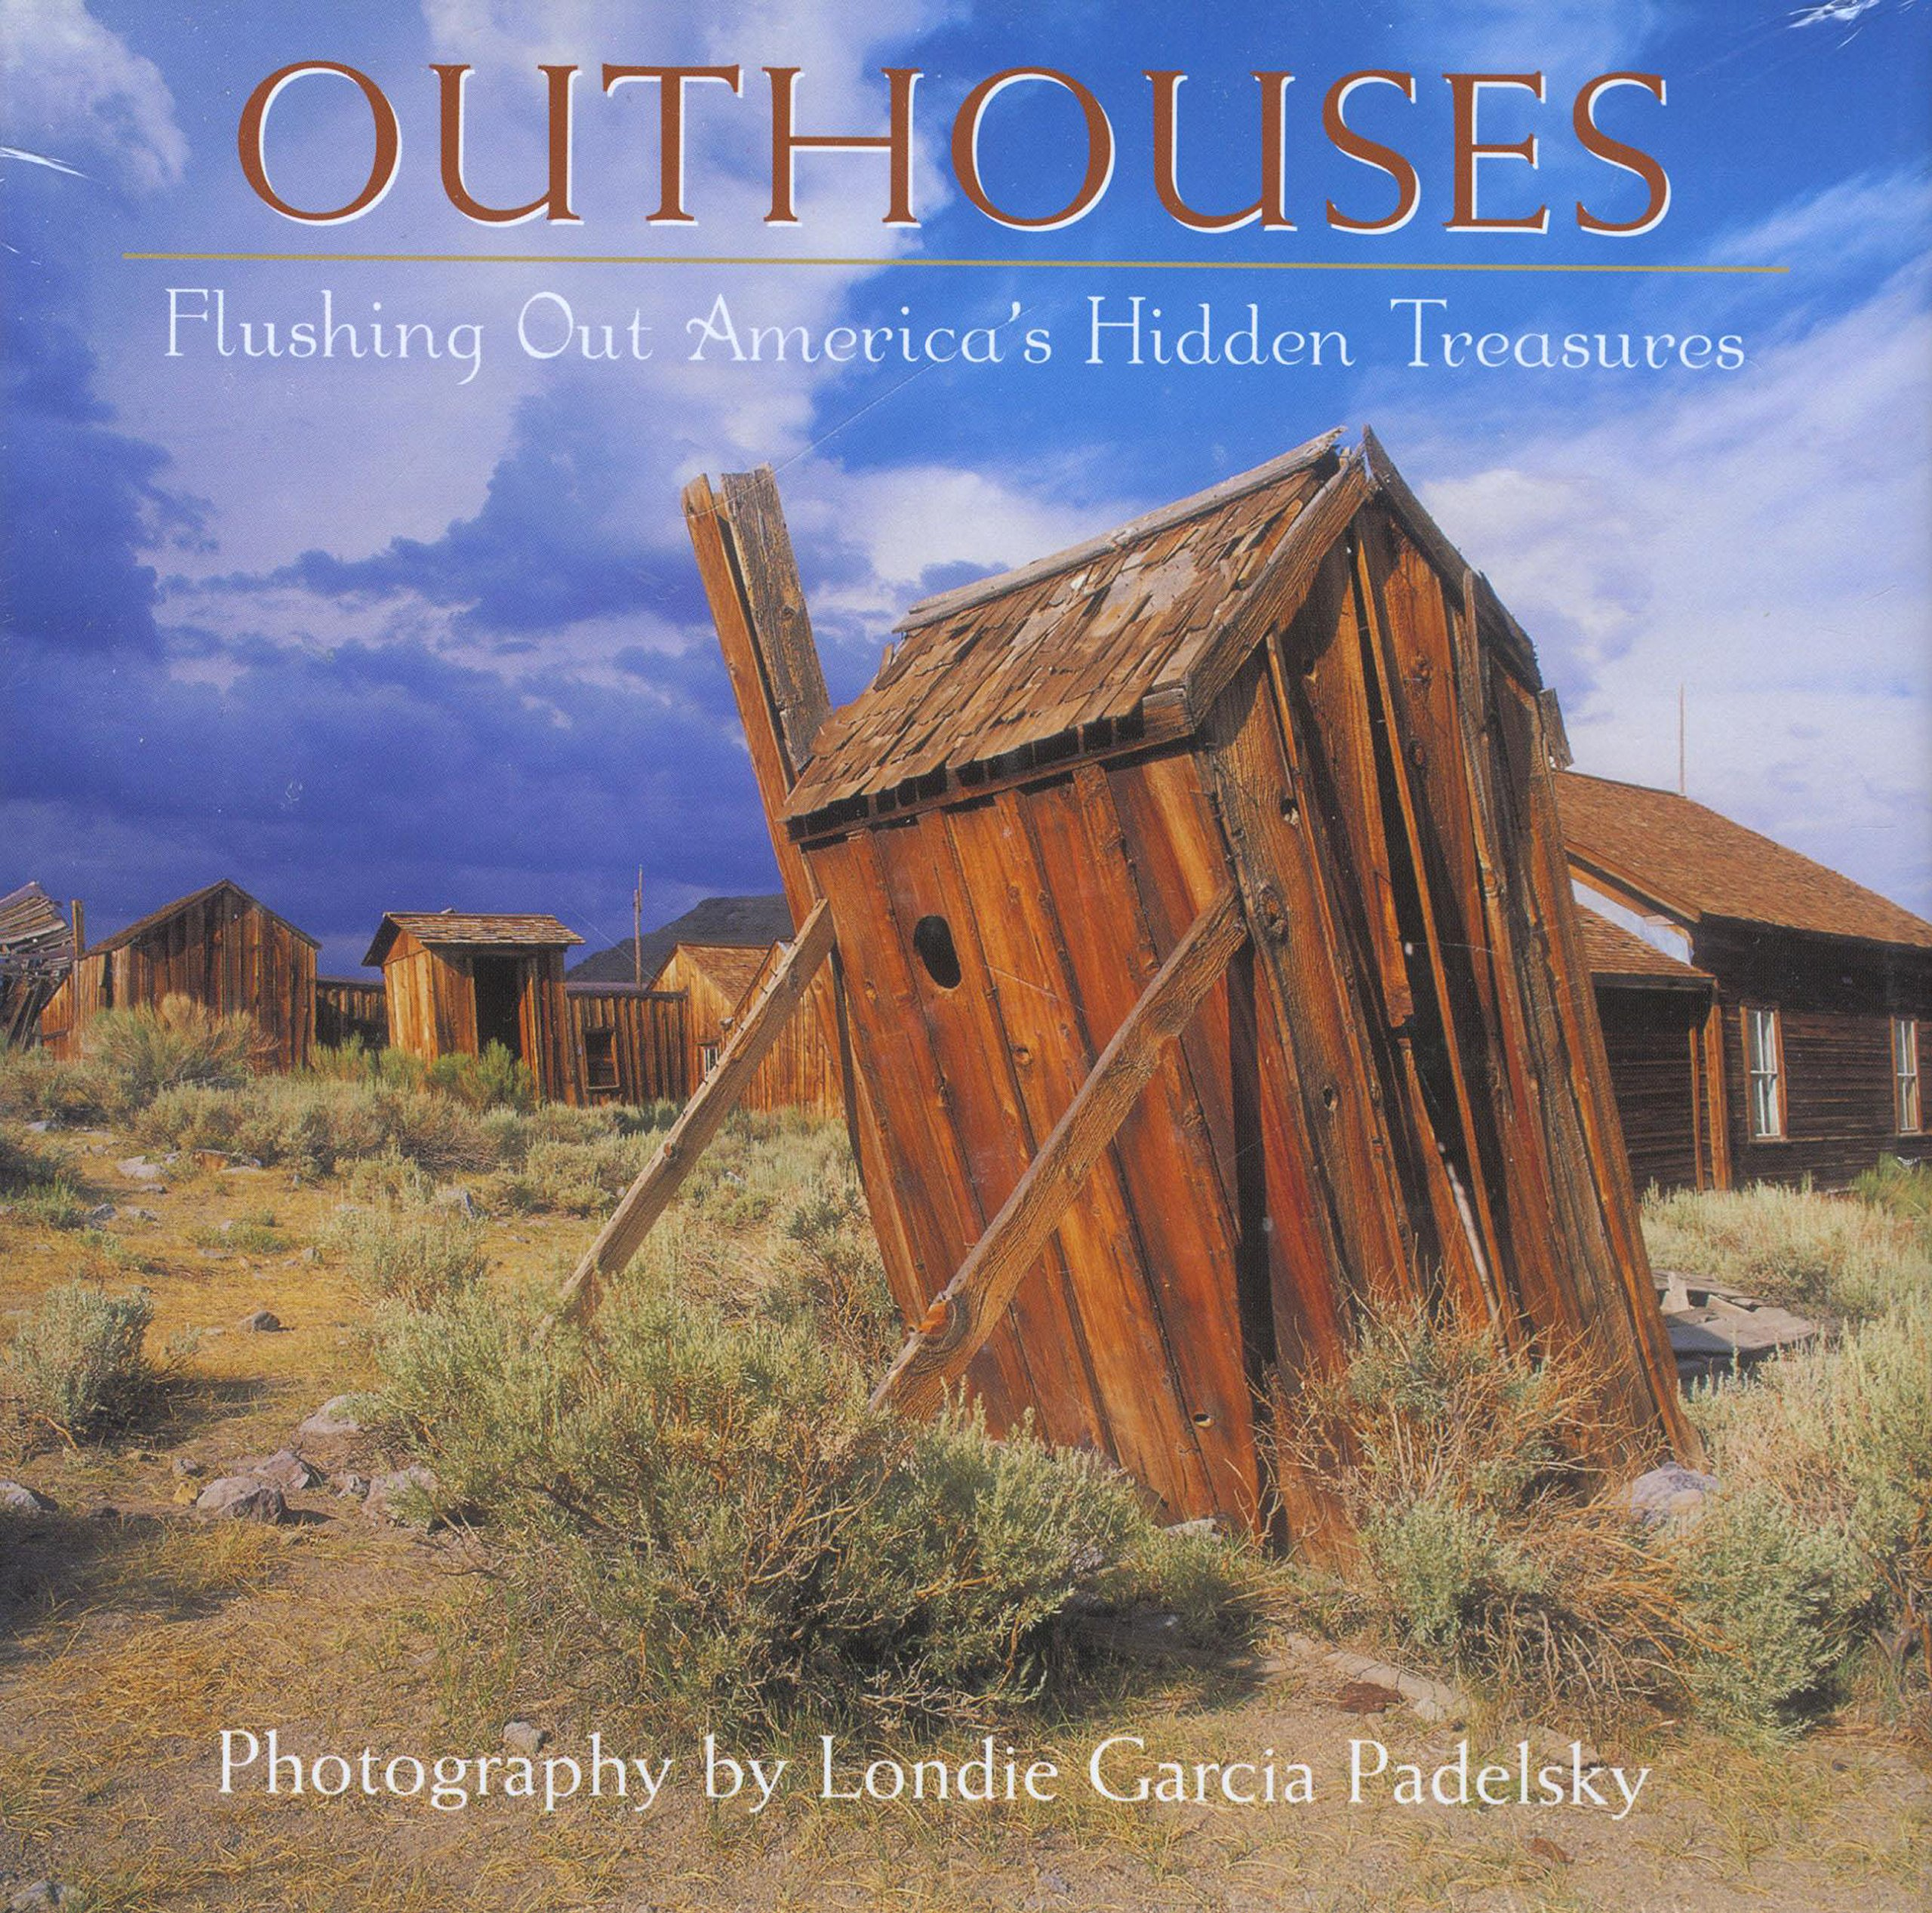 Outhouses: Flushing Out America's Hidden Treasures: Londie Padelsky:  9781933192253: Amazon.com: Books